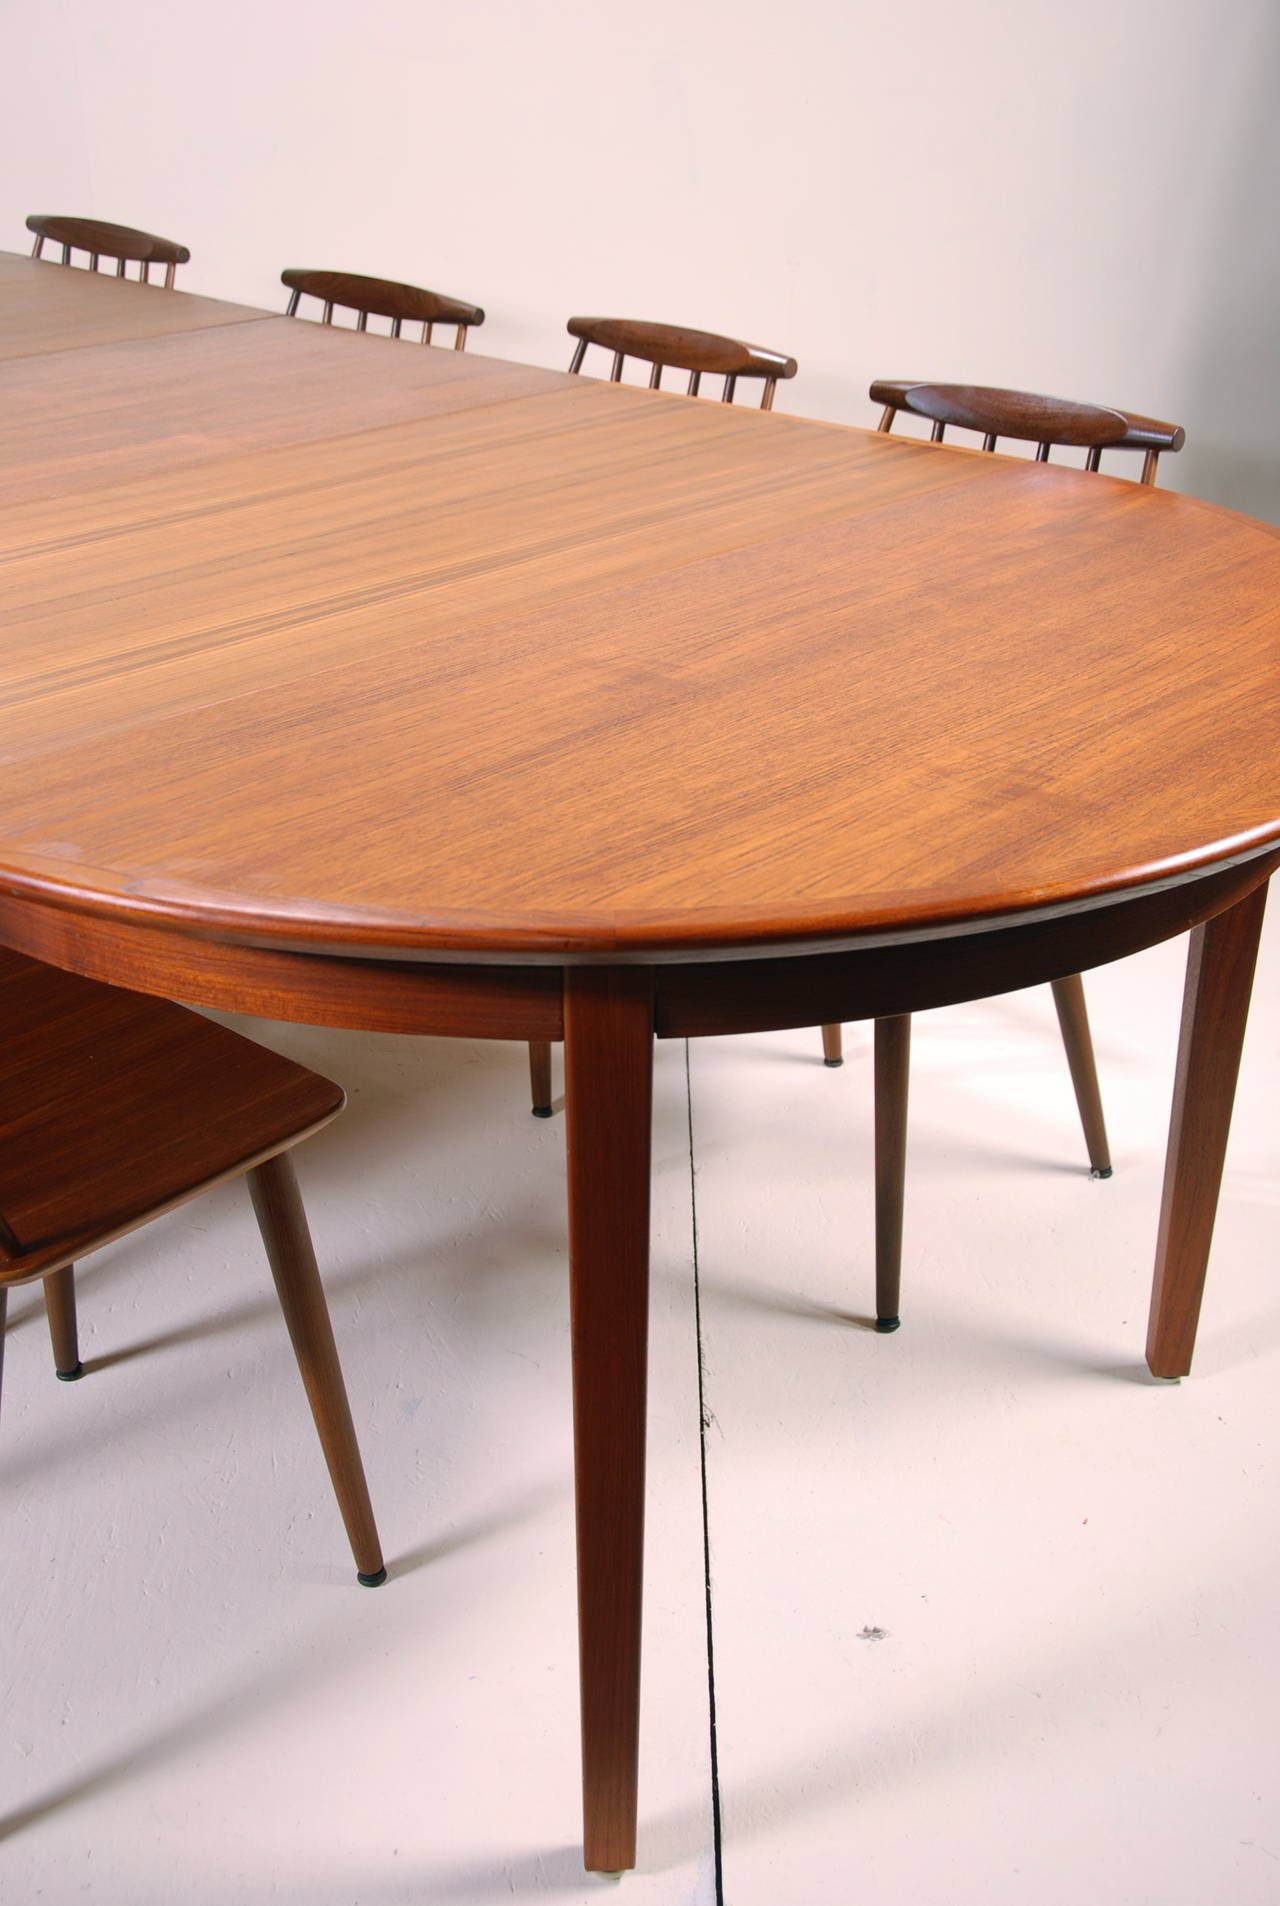 Large danish modern dining table in teak at 1stdibs for Danish modern dining room table